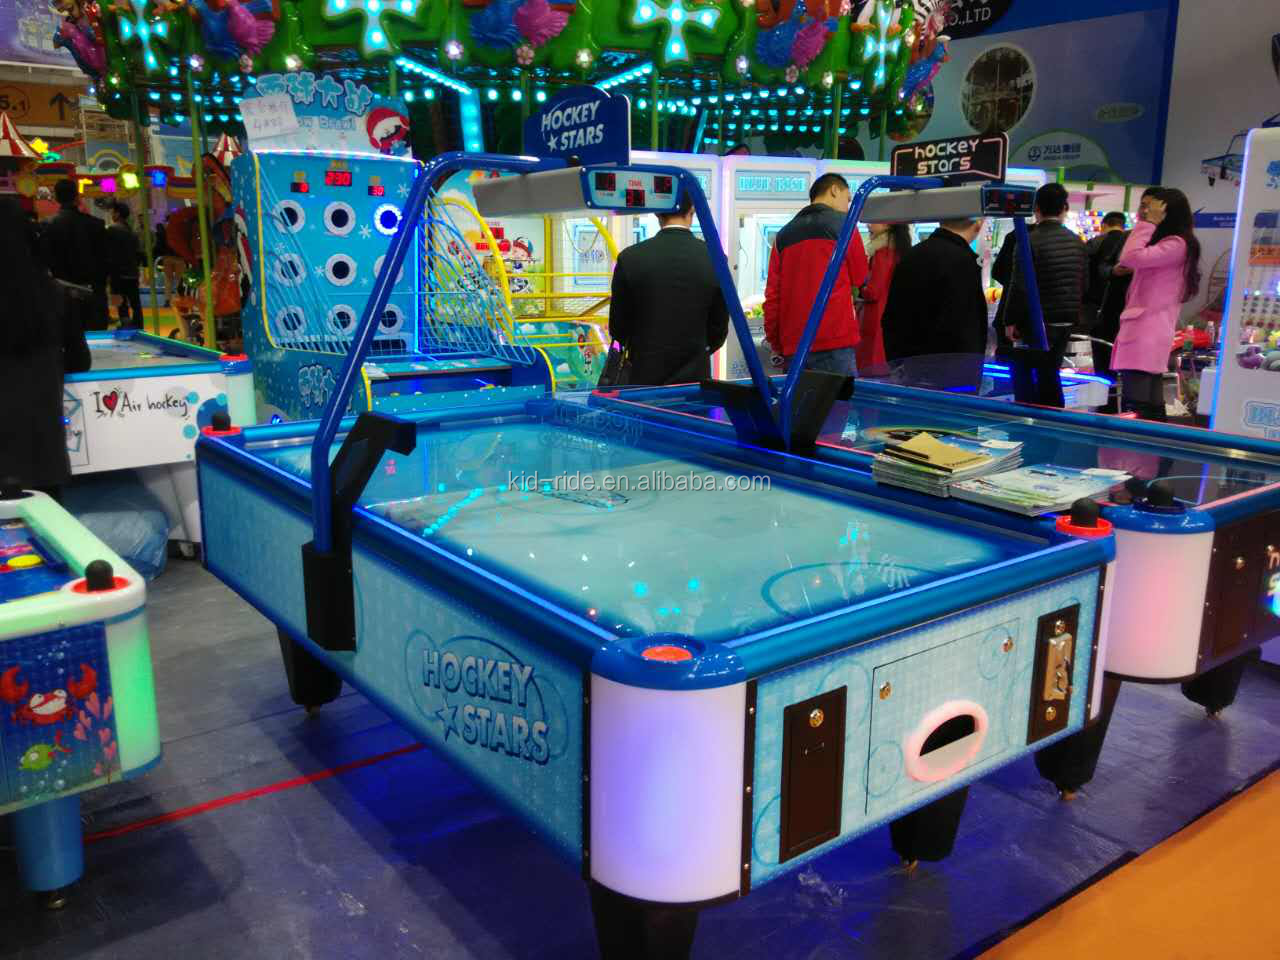 Indoor Arcade Amusement Game Machine Musical Air Hockey Table  Kids for Sale